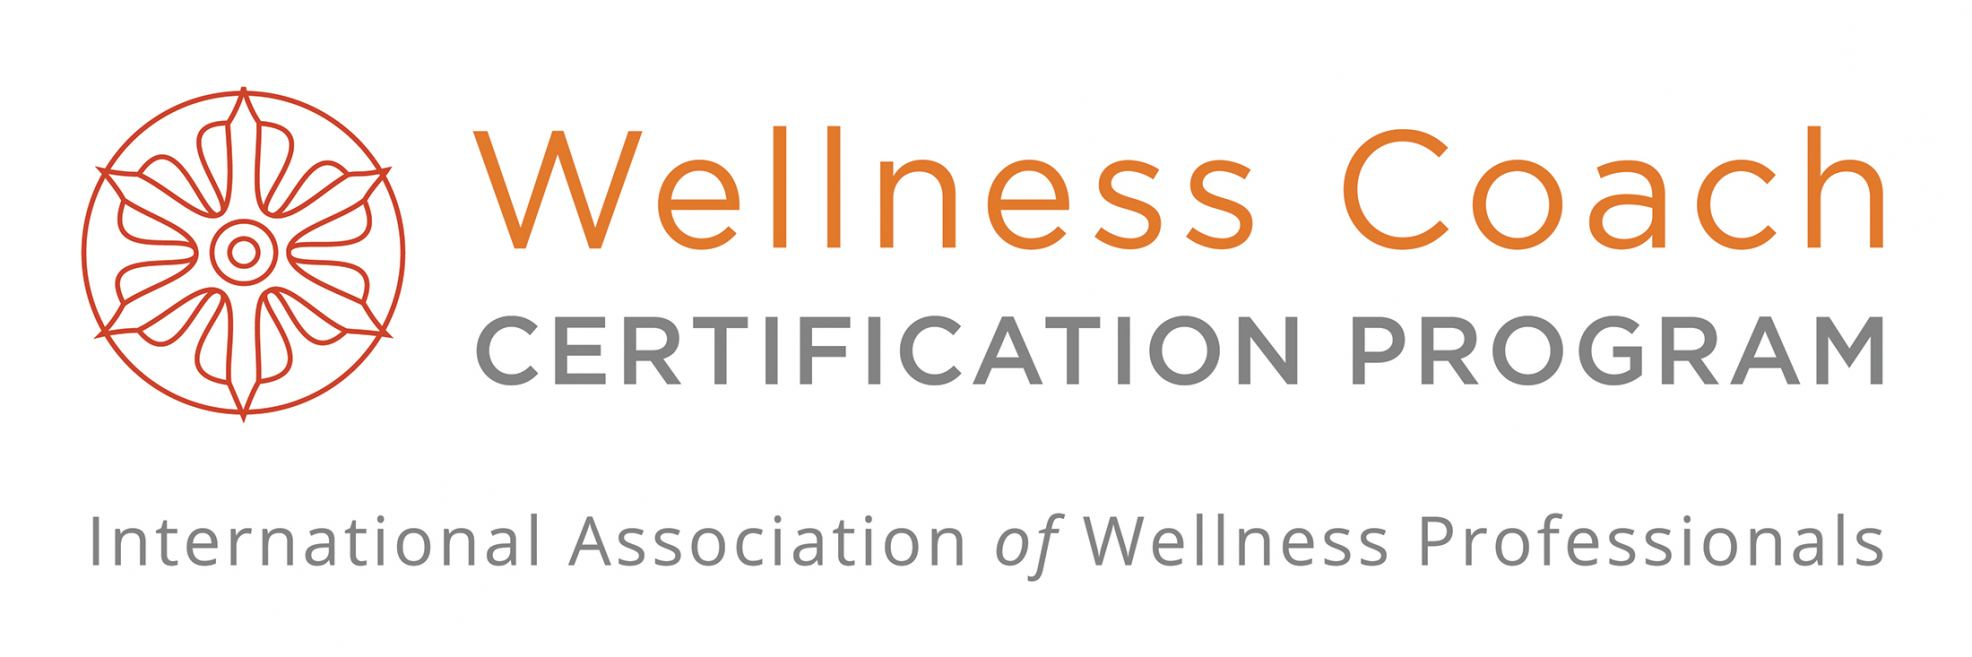 International Association of Wellness Professionals Logo